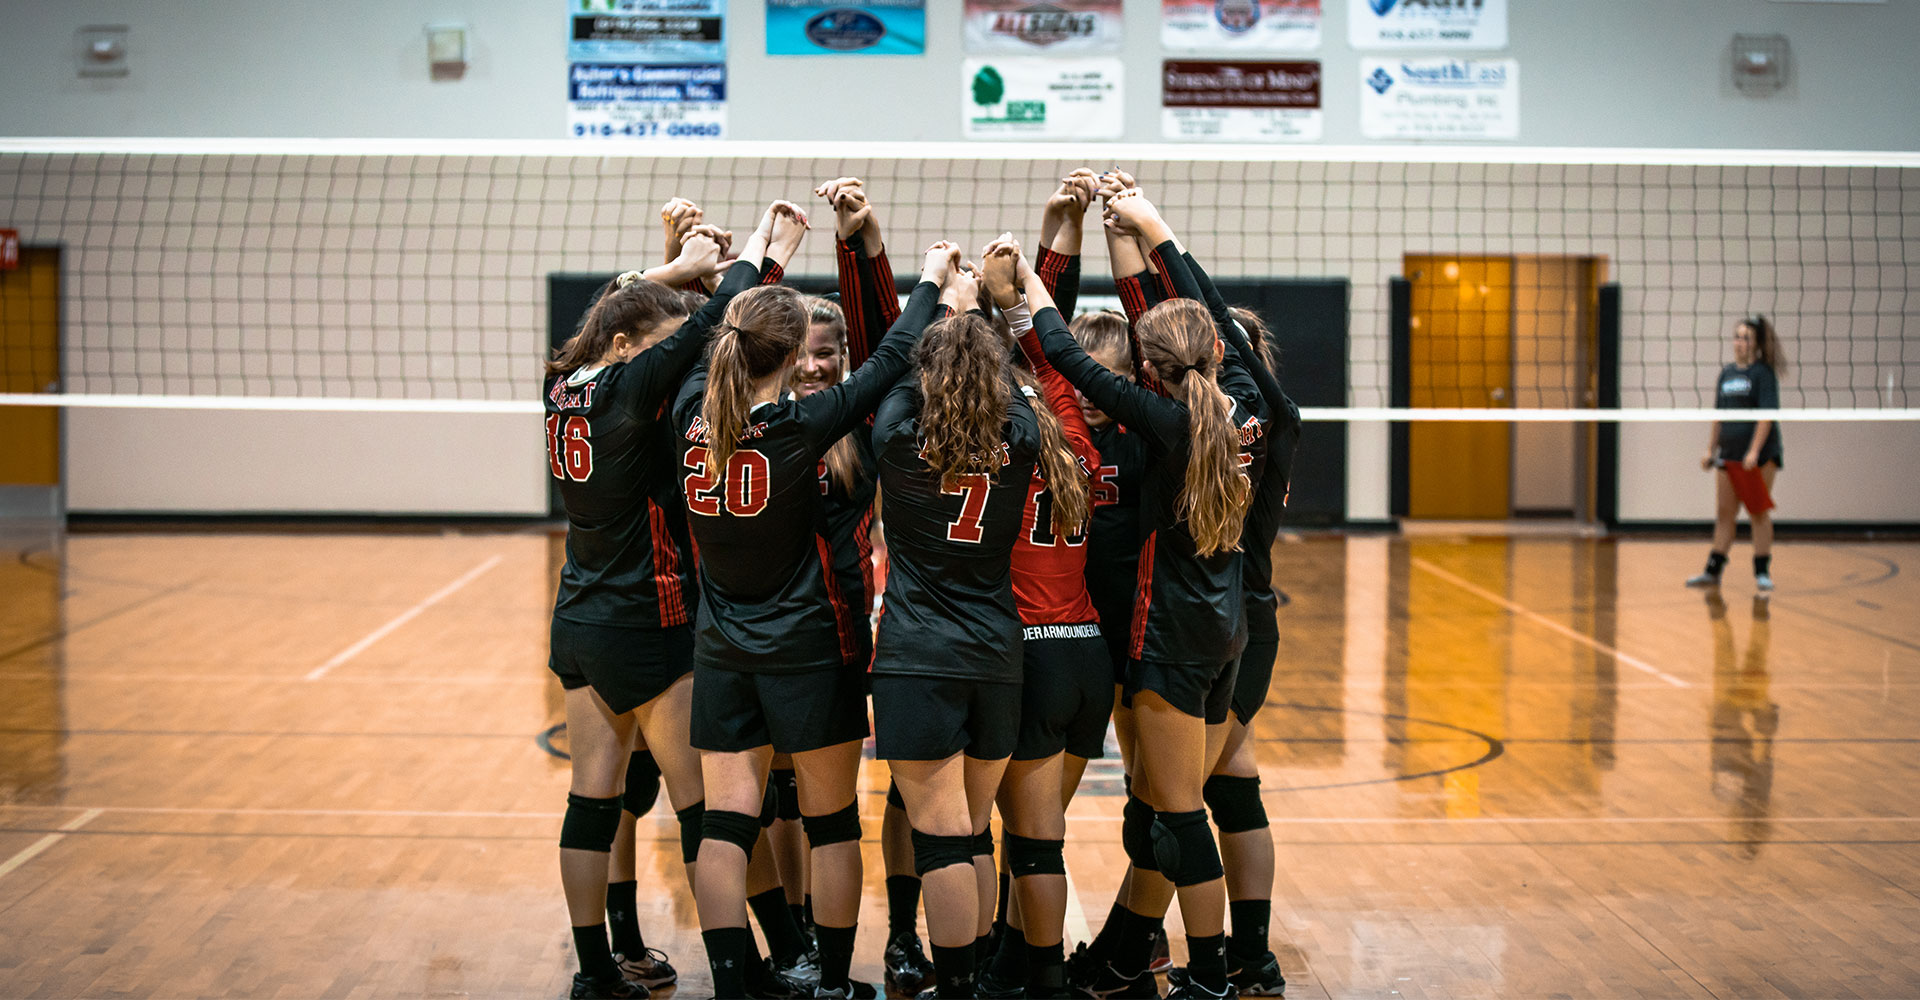 Featured Image: Women's Volleyball High School